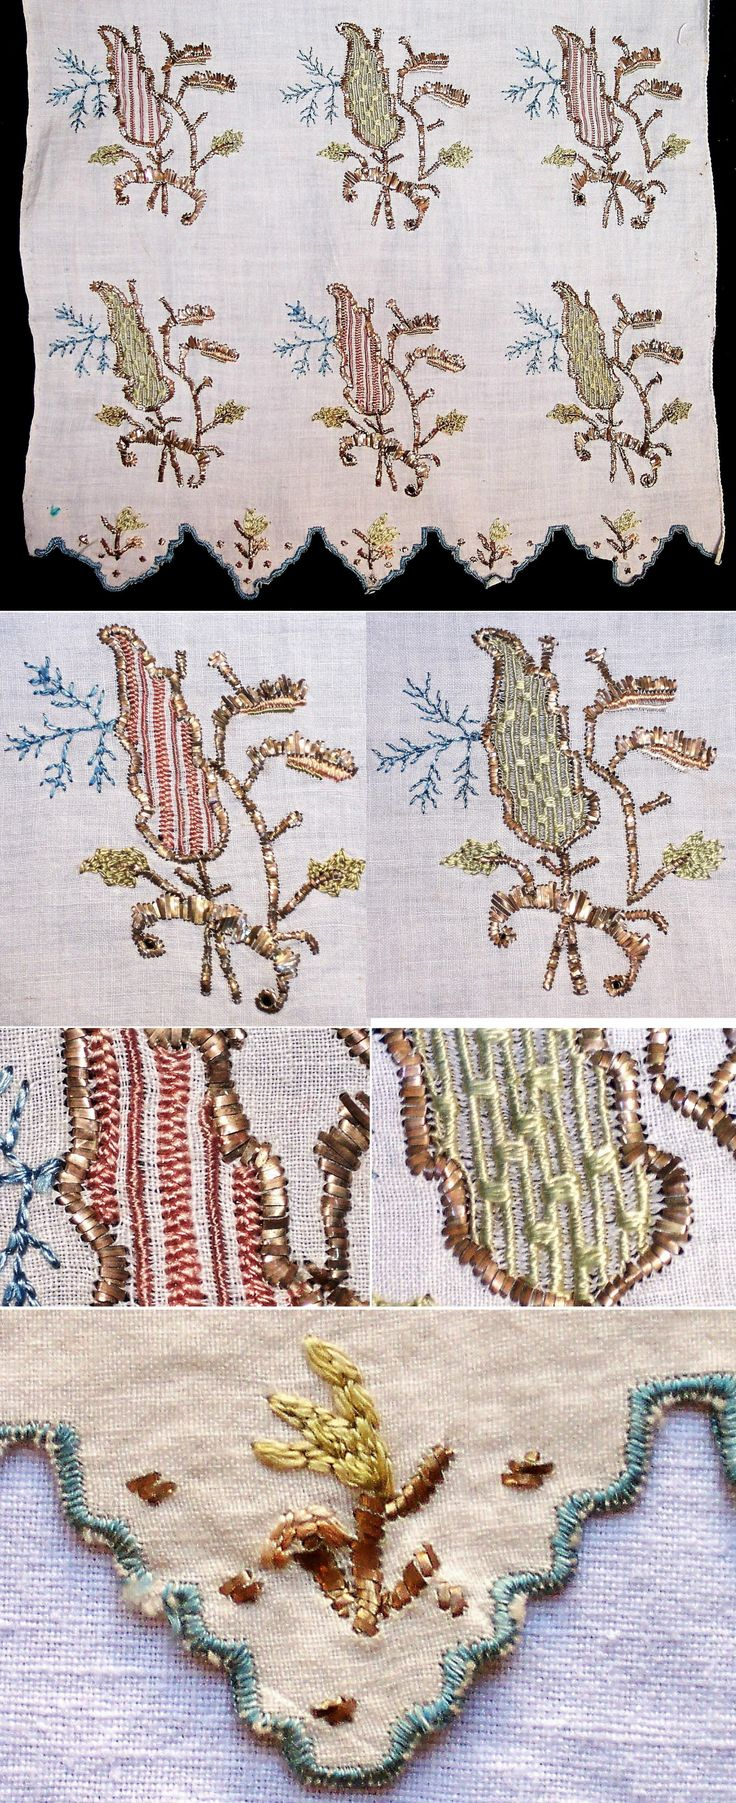 One of both embroidered ends of a woman's 'uckur' (waistband/sash).  From western Anatolia (probably Bursa), late 19th c.  The embroidery is 'two-sided' (identical on both sides of the fabric) and is executed in both multi-coloured silk and 'tel kırma' (motives obtained by sticking narrow metallic strips through the fabric and folding them.).  (Inv.nr. brdw037 - Kavak Costume Collection - Antwerpen/Belgium).